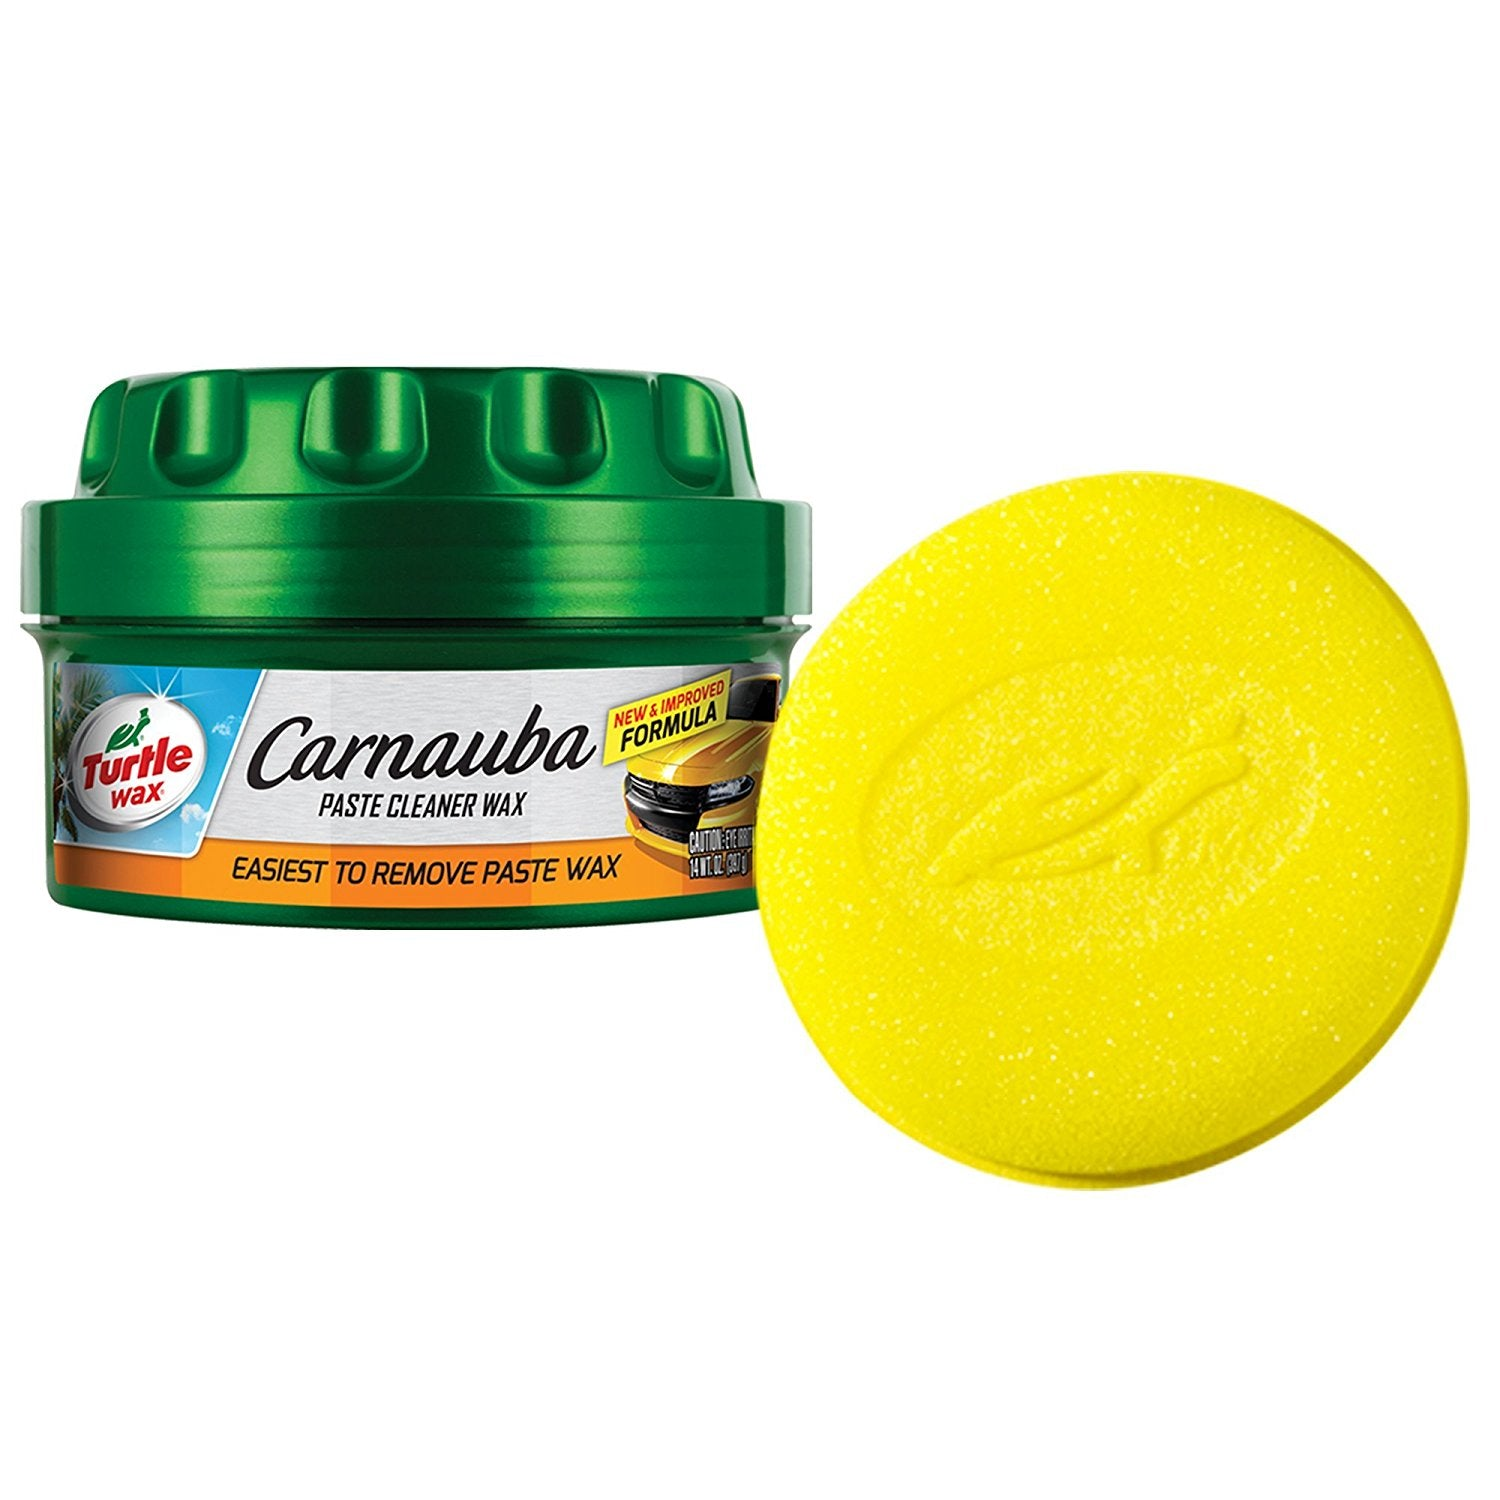 Turtle Wax Carnauba Cleaner Paste Wax - 14 oz.